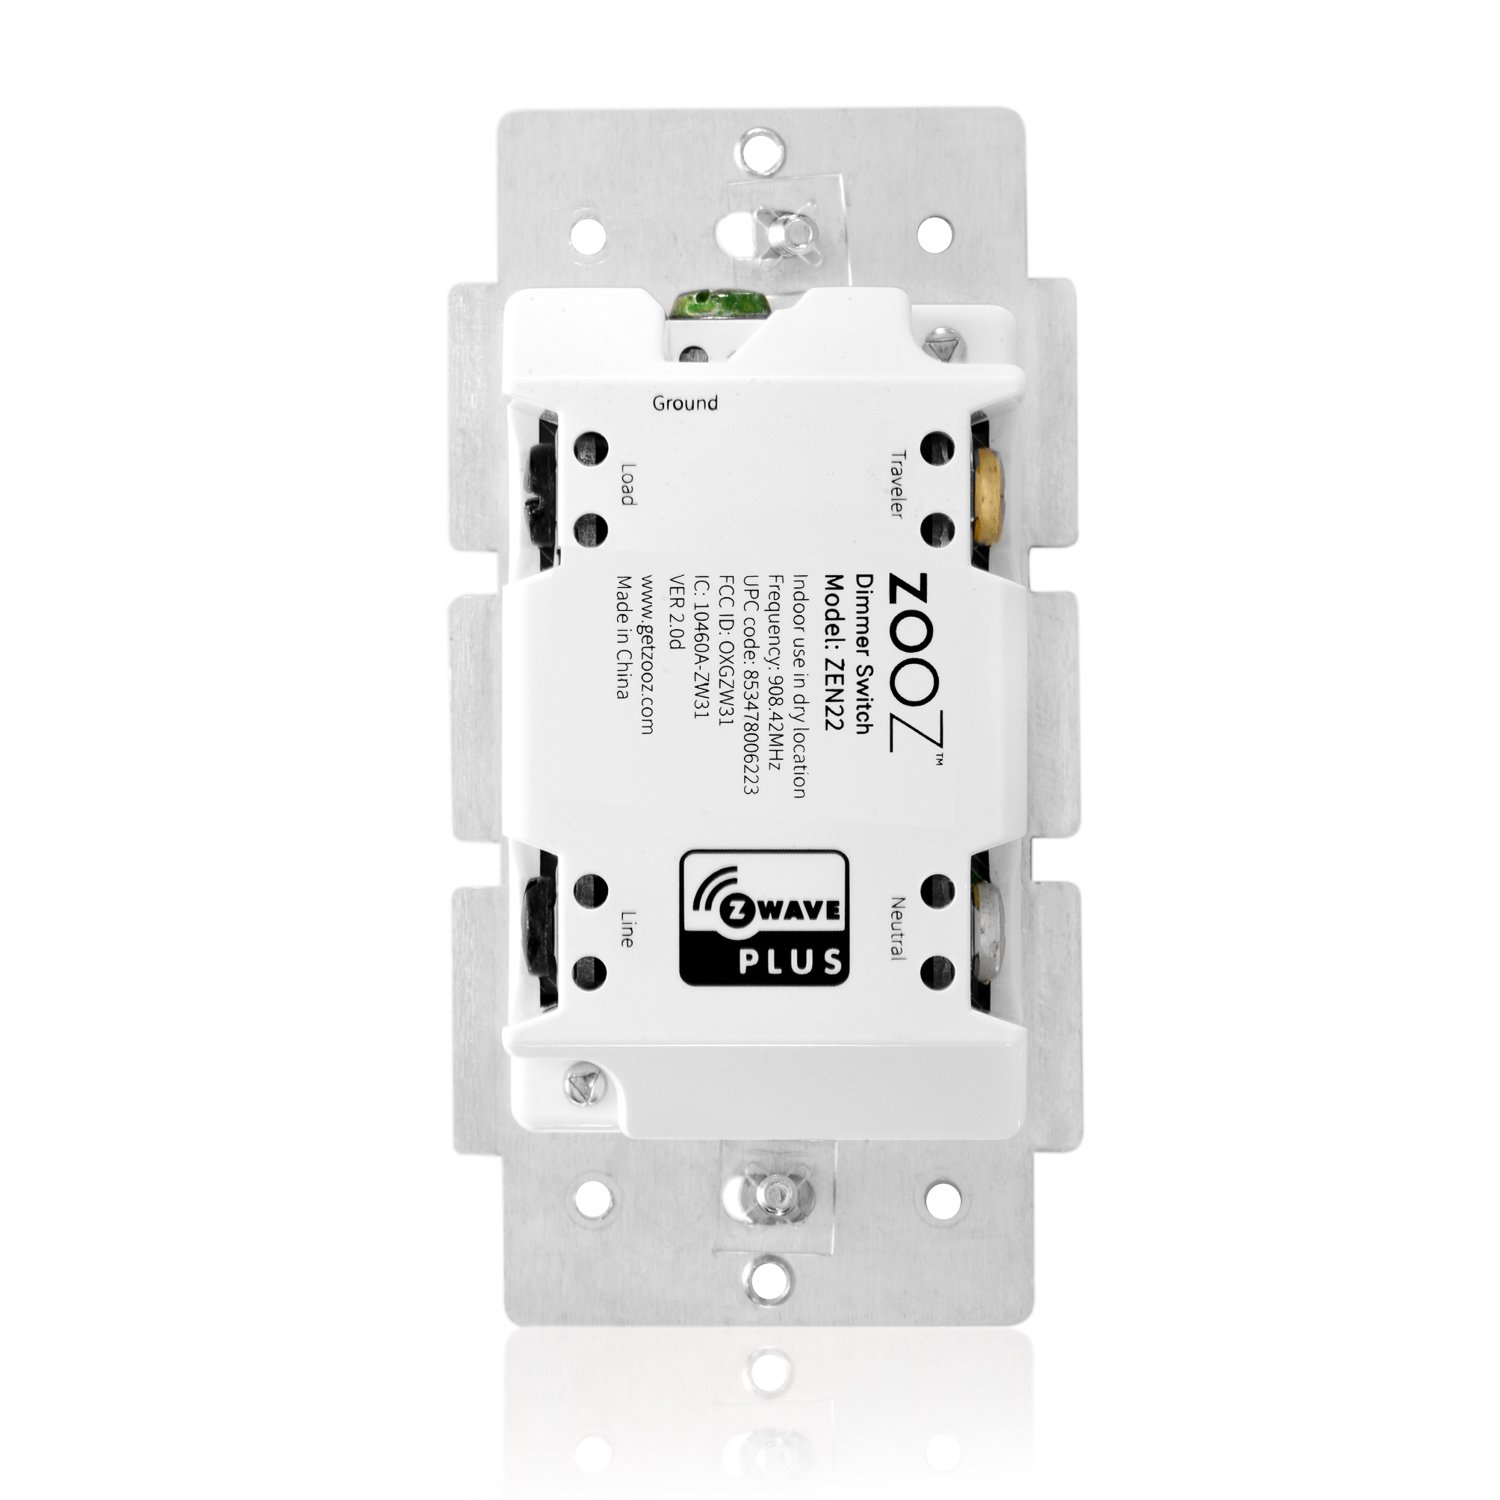 Zooz Z Wave Plus Wall Dimmer Switch Zen22 White Ver 20 Works Fitting To Old Electrical Wiringdimmerinstructionsjpg With Existing Regular 3 Way